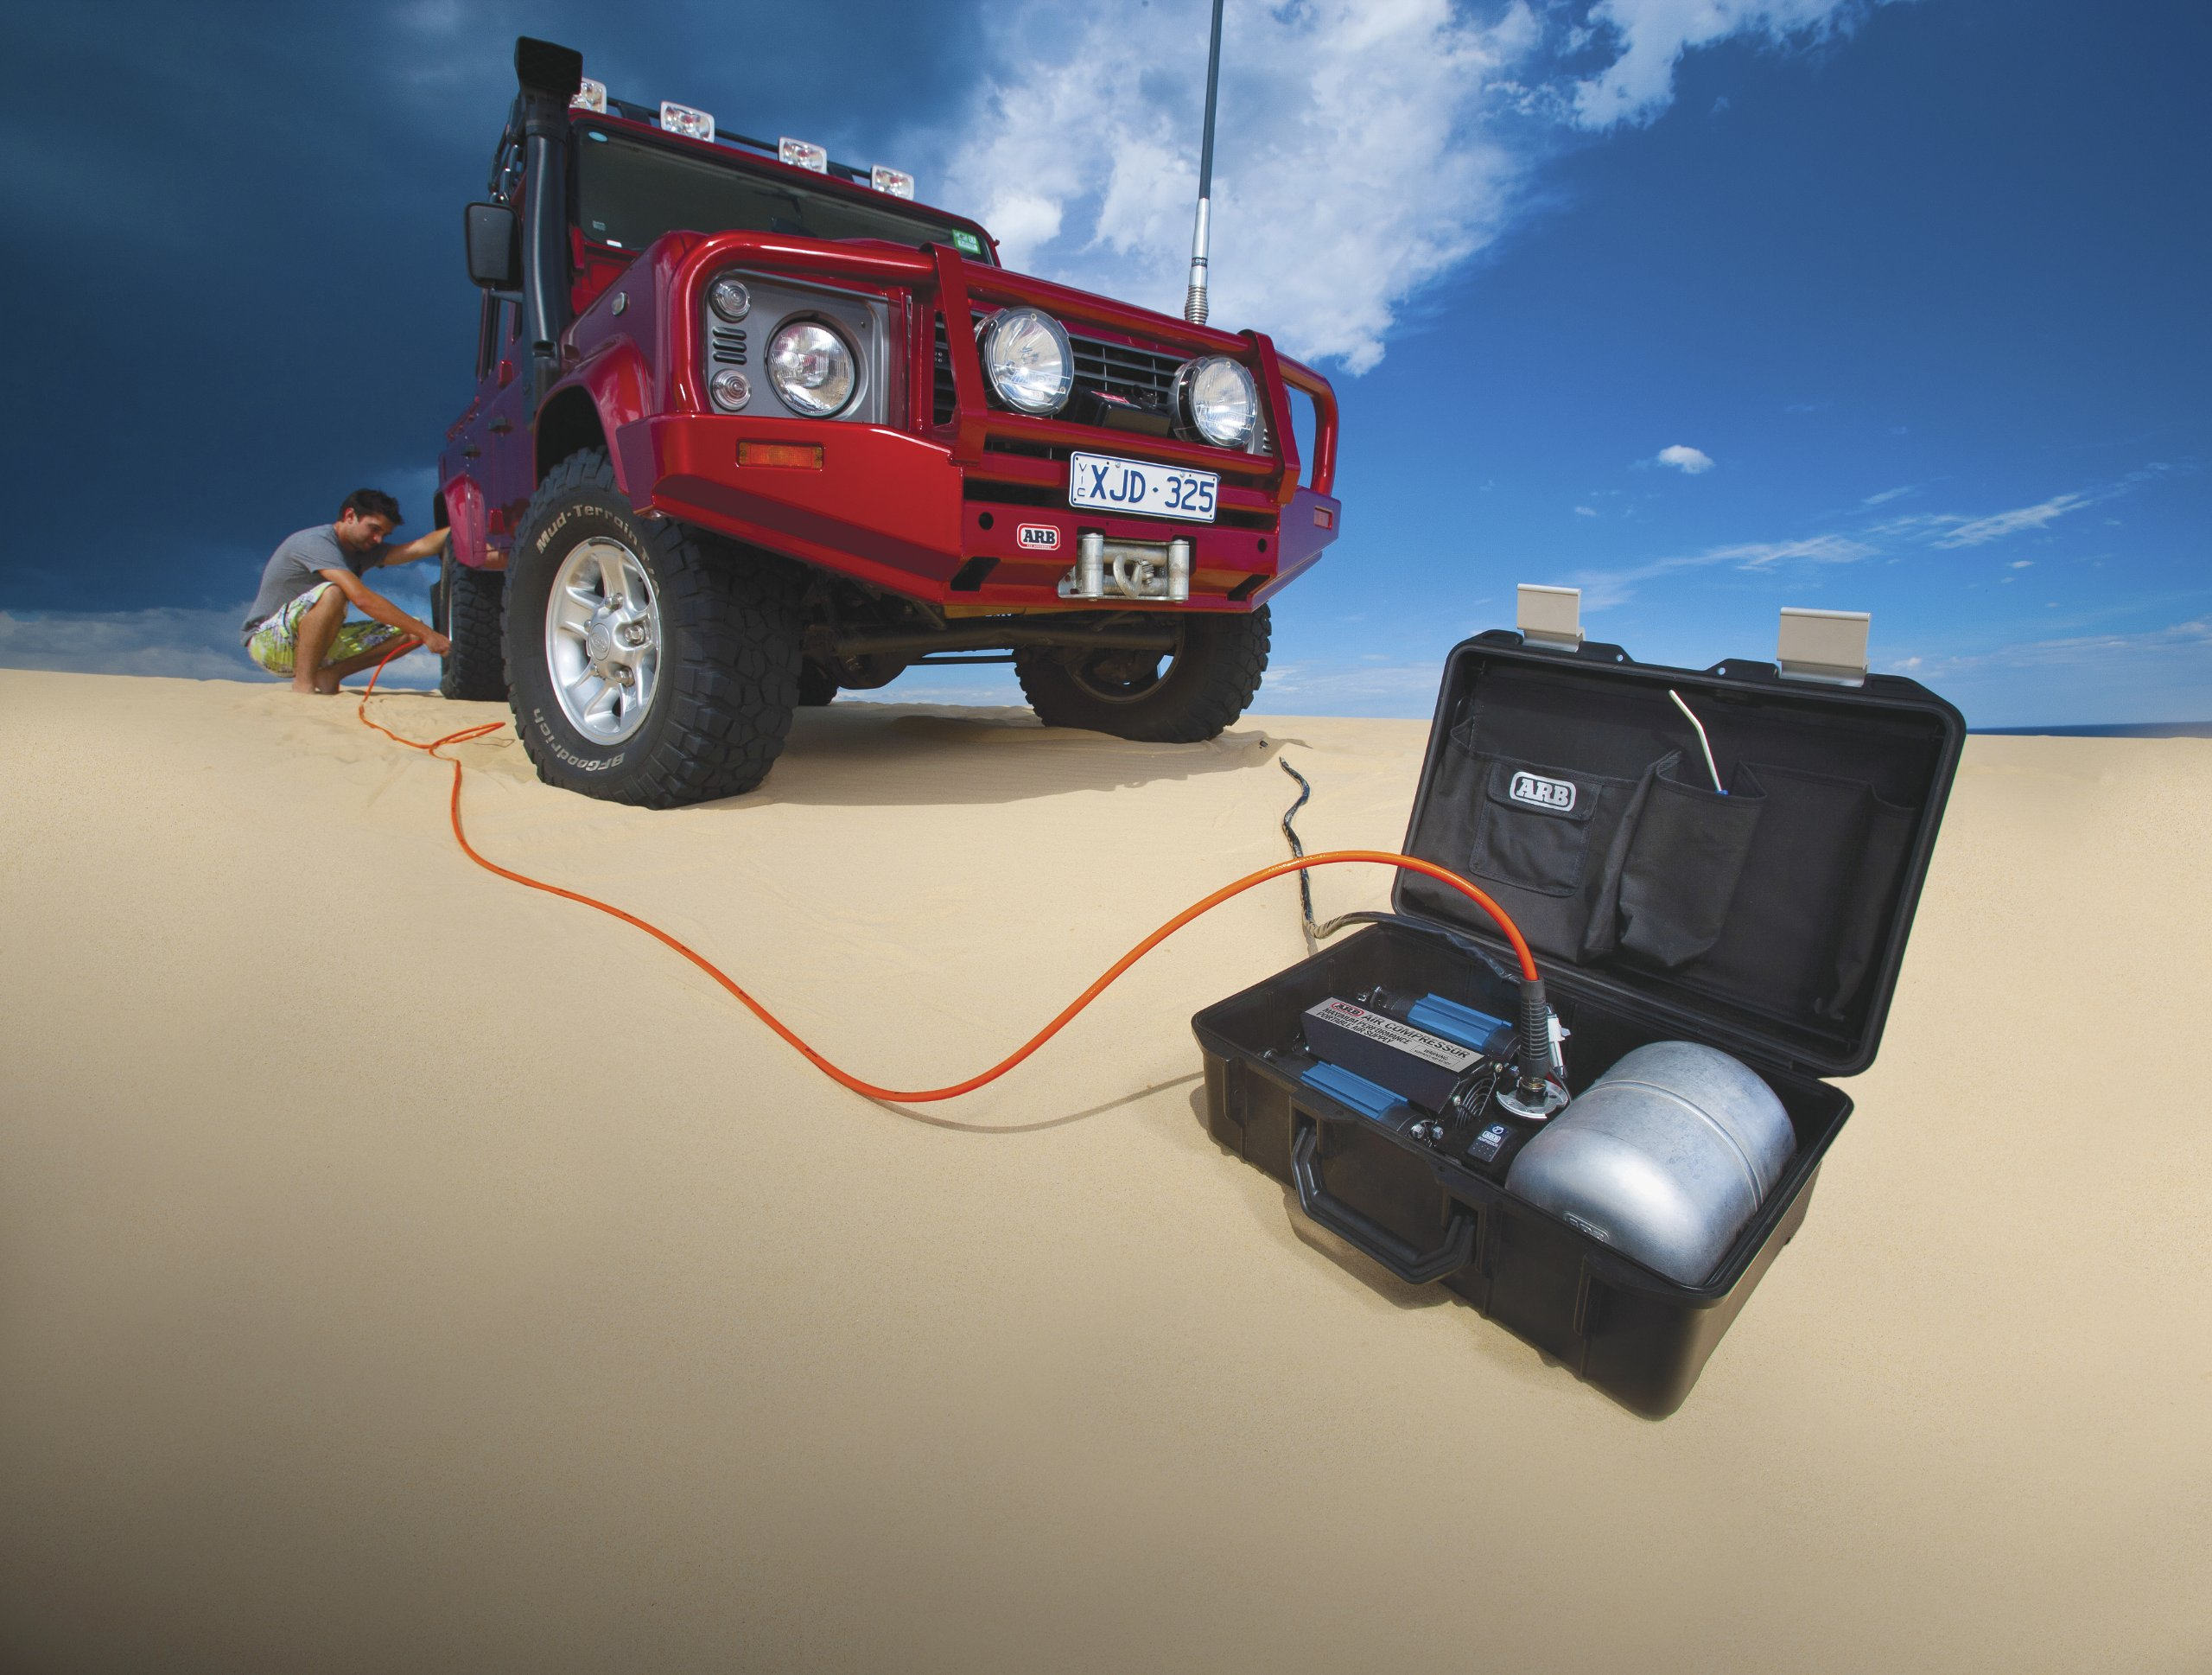 ARB (CKMTP12) 12V Twin Motor High Performance Portable Air Compressor by ARB (Image #3)